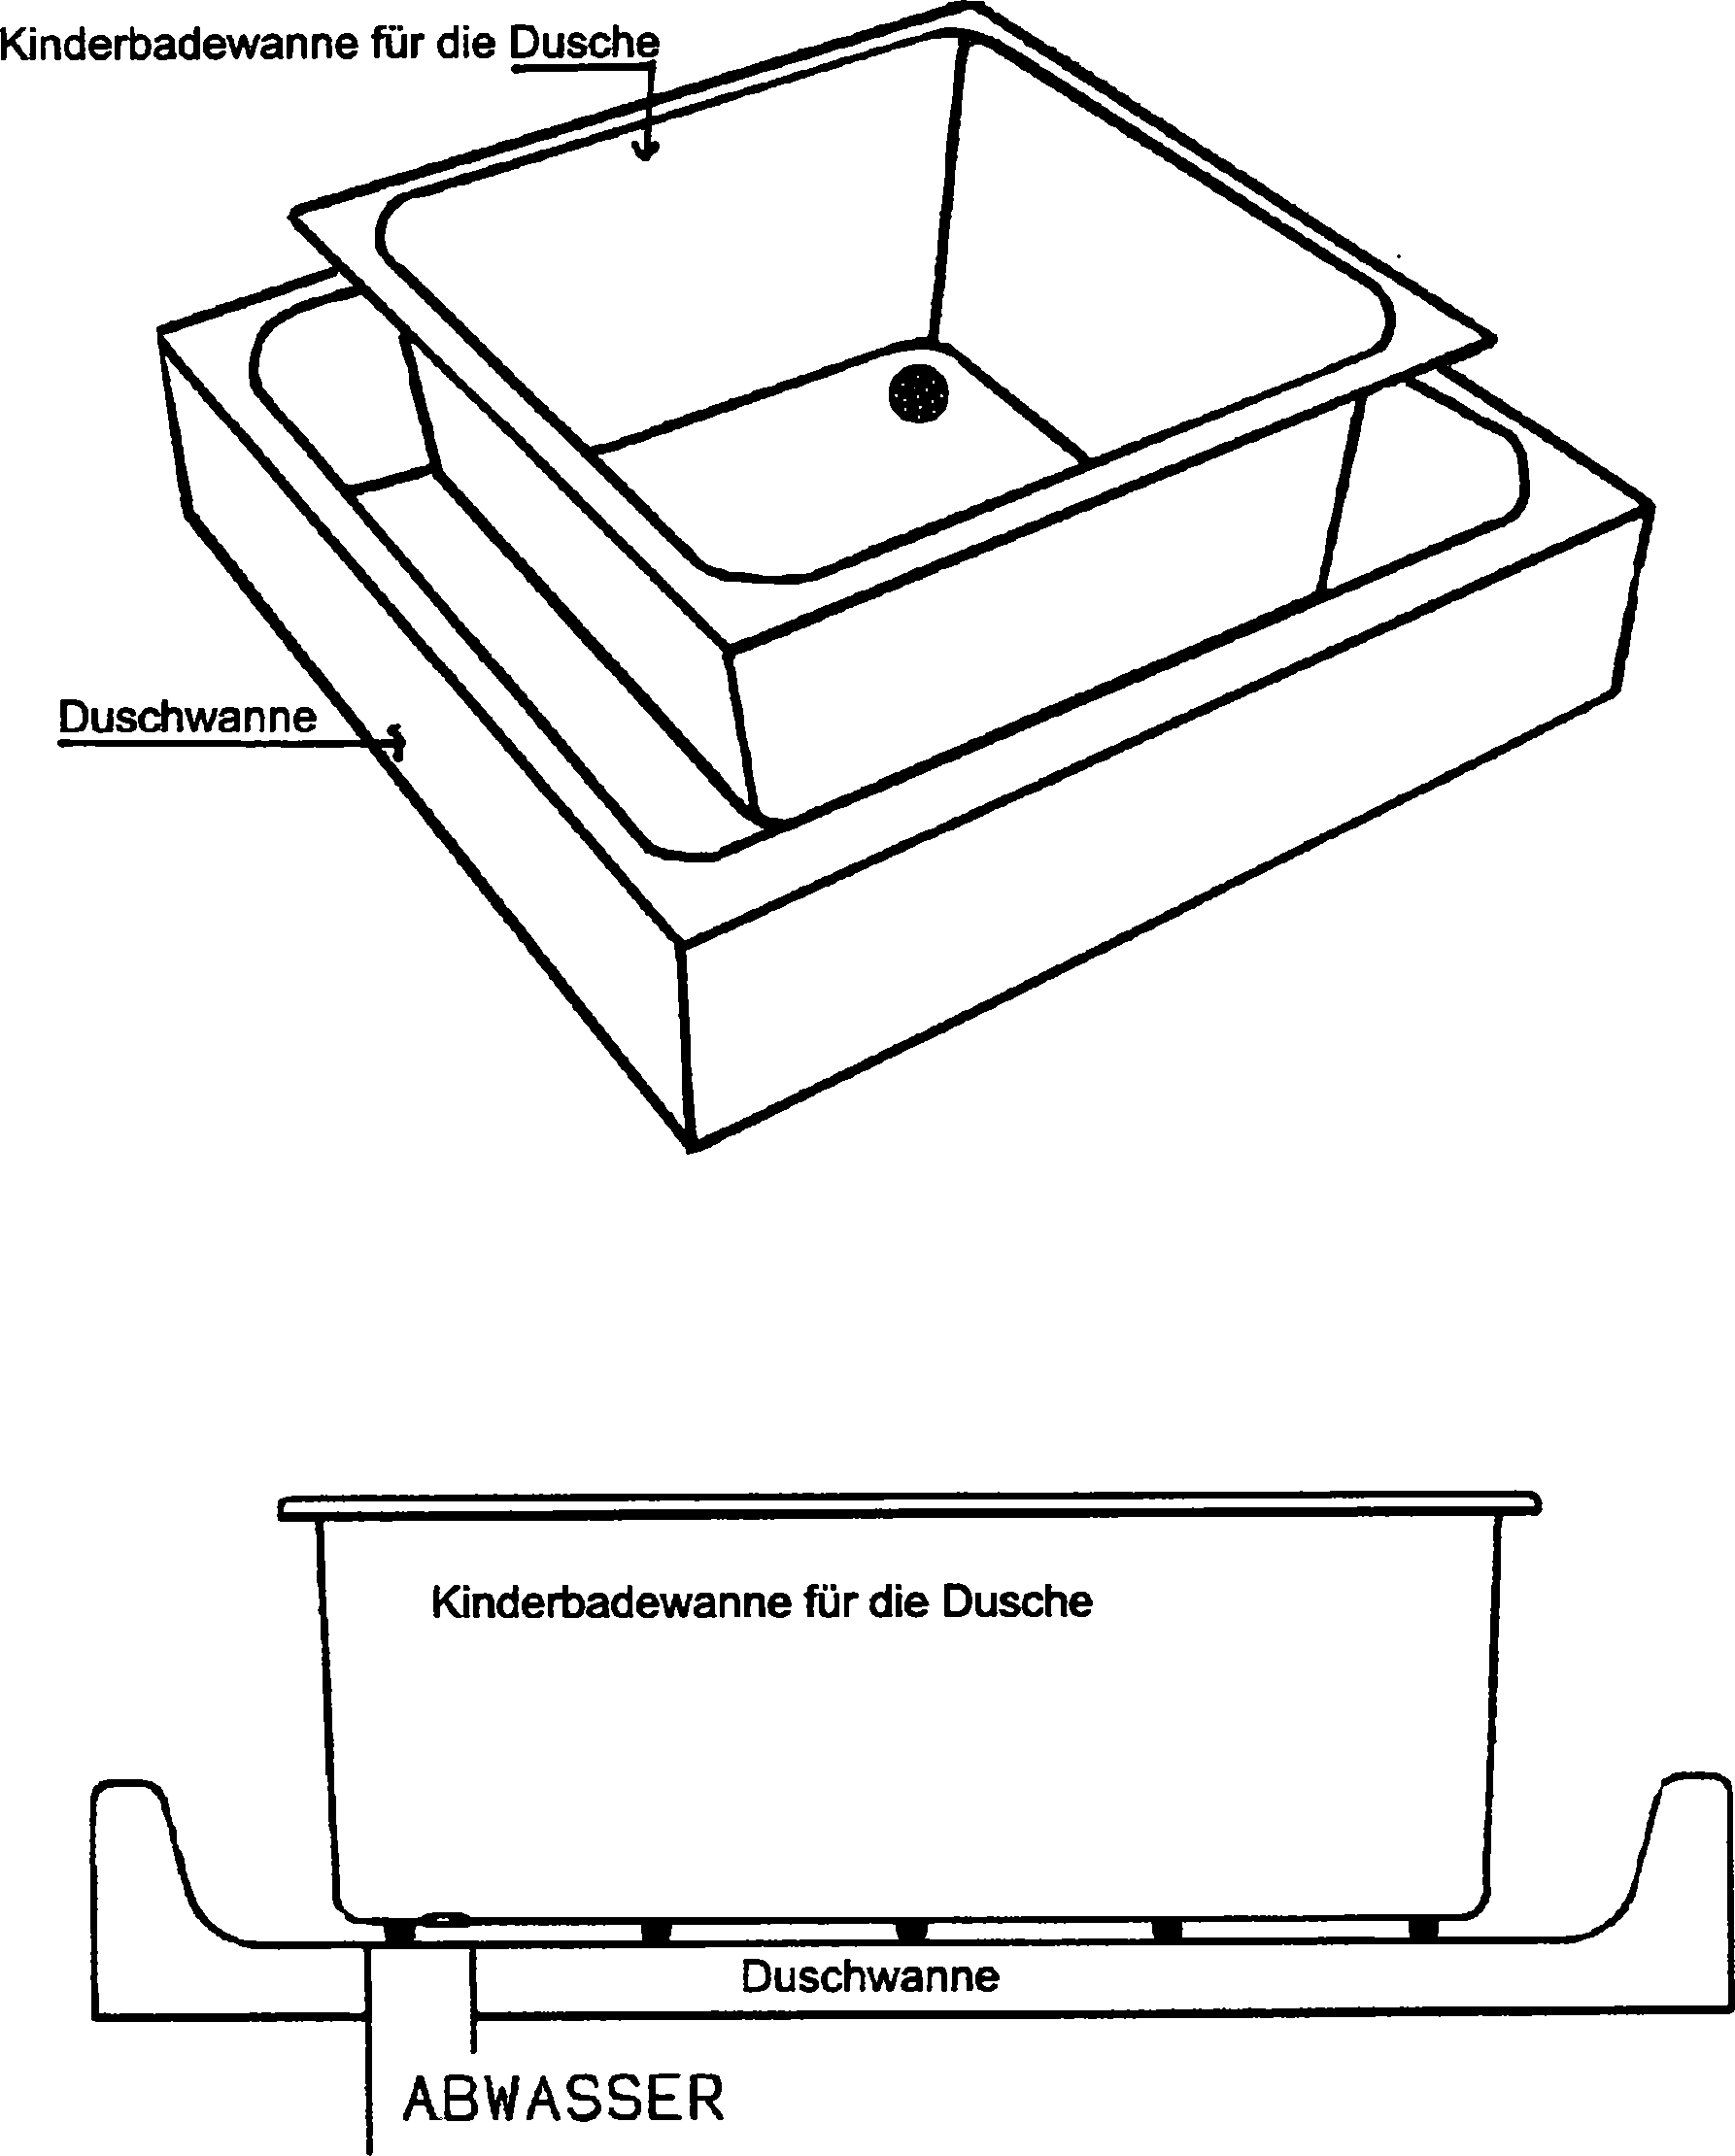 patent de202011003004u1 kinderbadewanne f r die dusche google patents. Black Bedroom Furniture Sets. Home Design Ideas